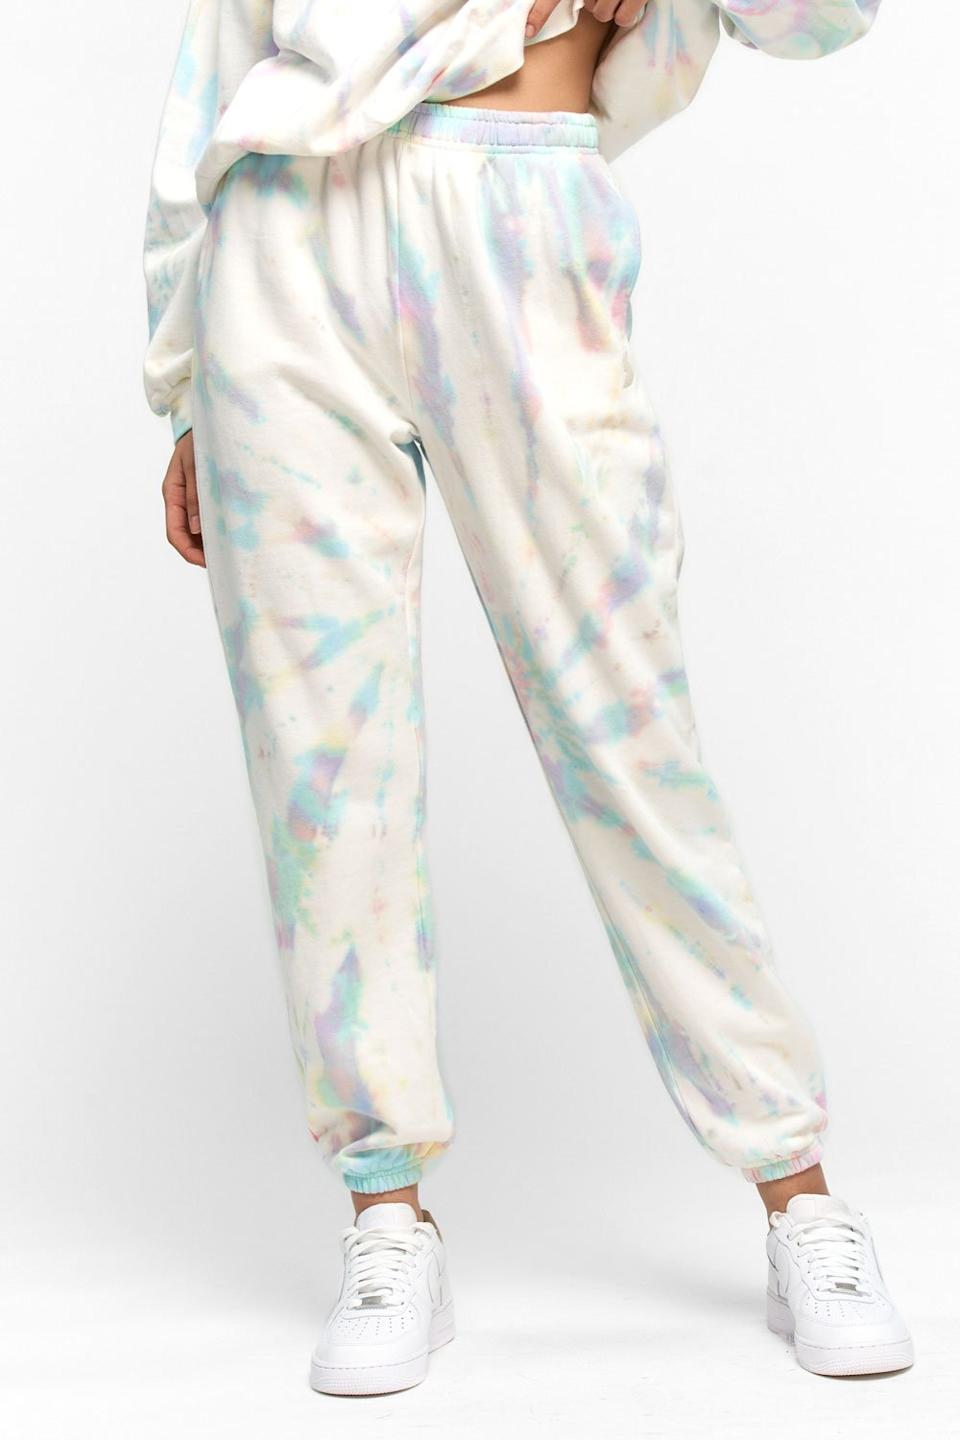 Tie Dye Sweatpants (Photo via Kuwalla Tee)